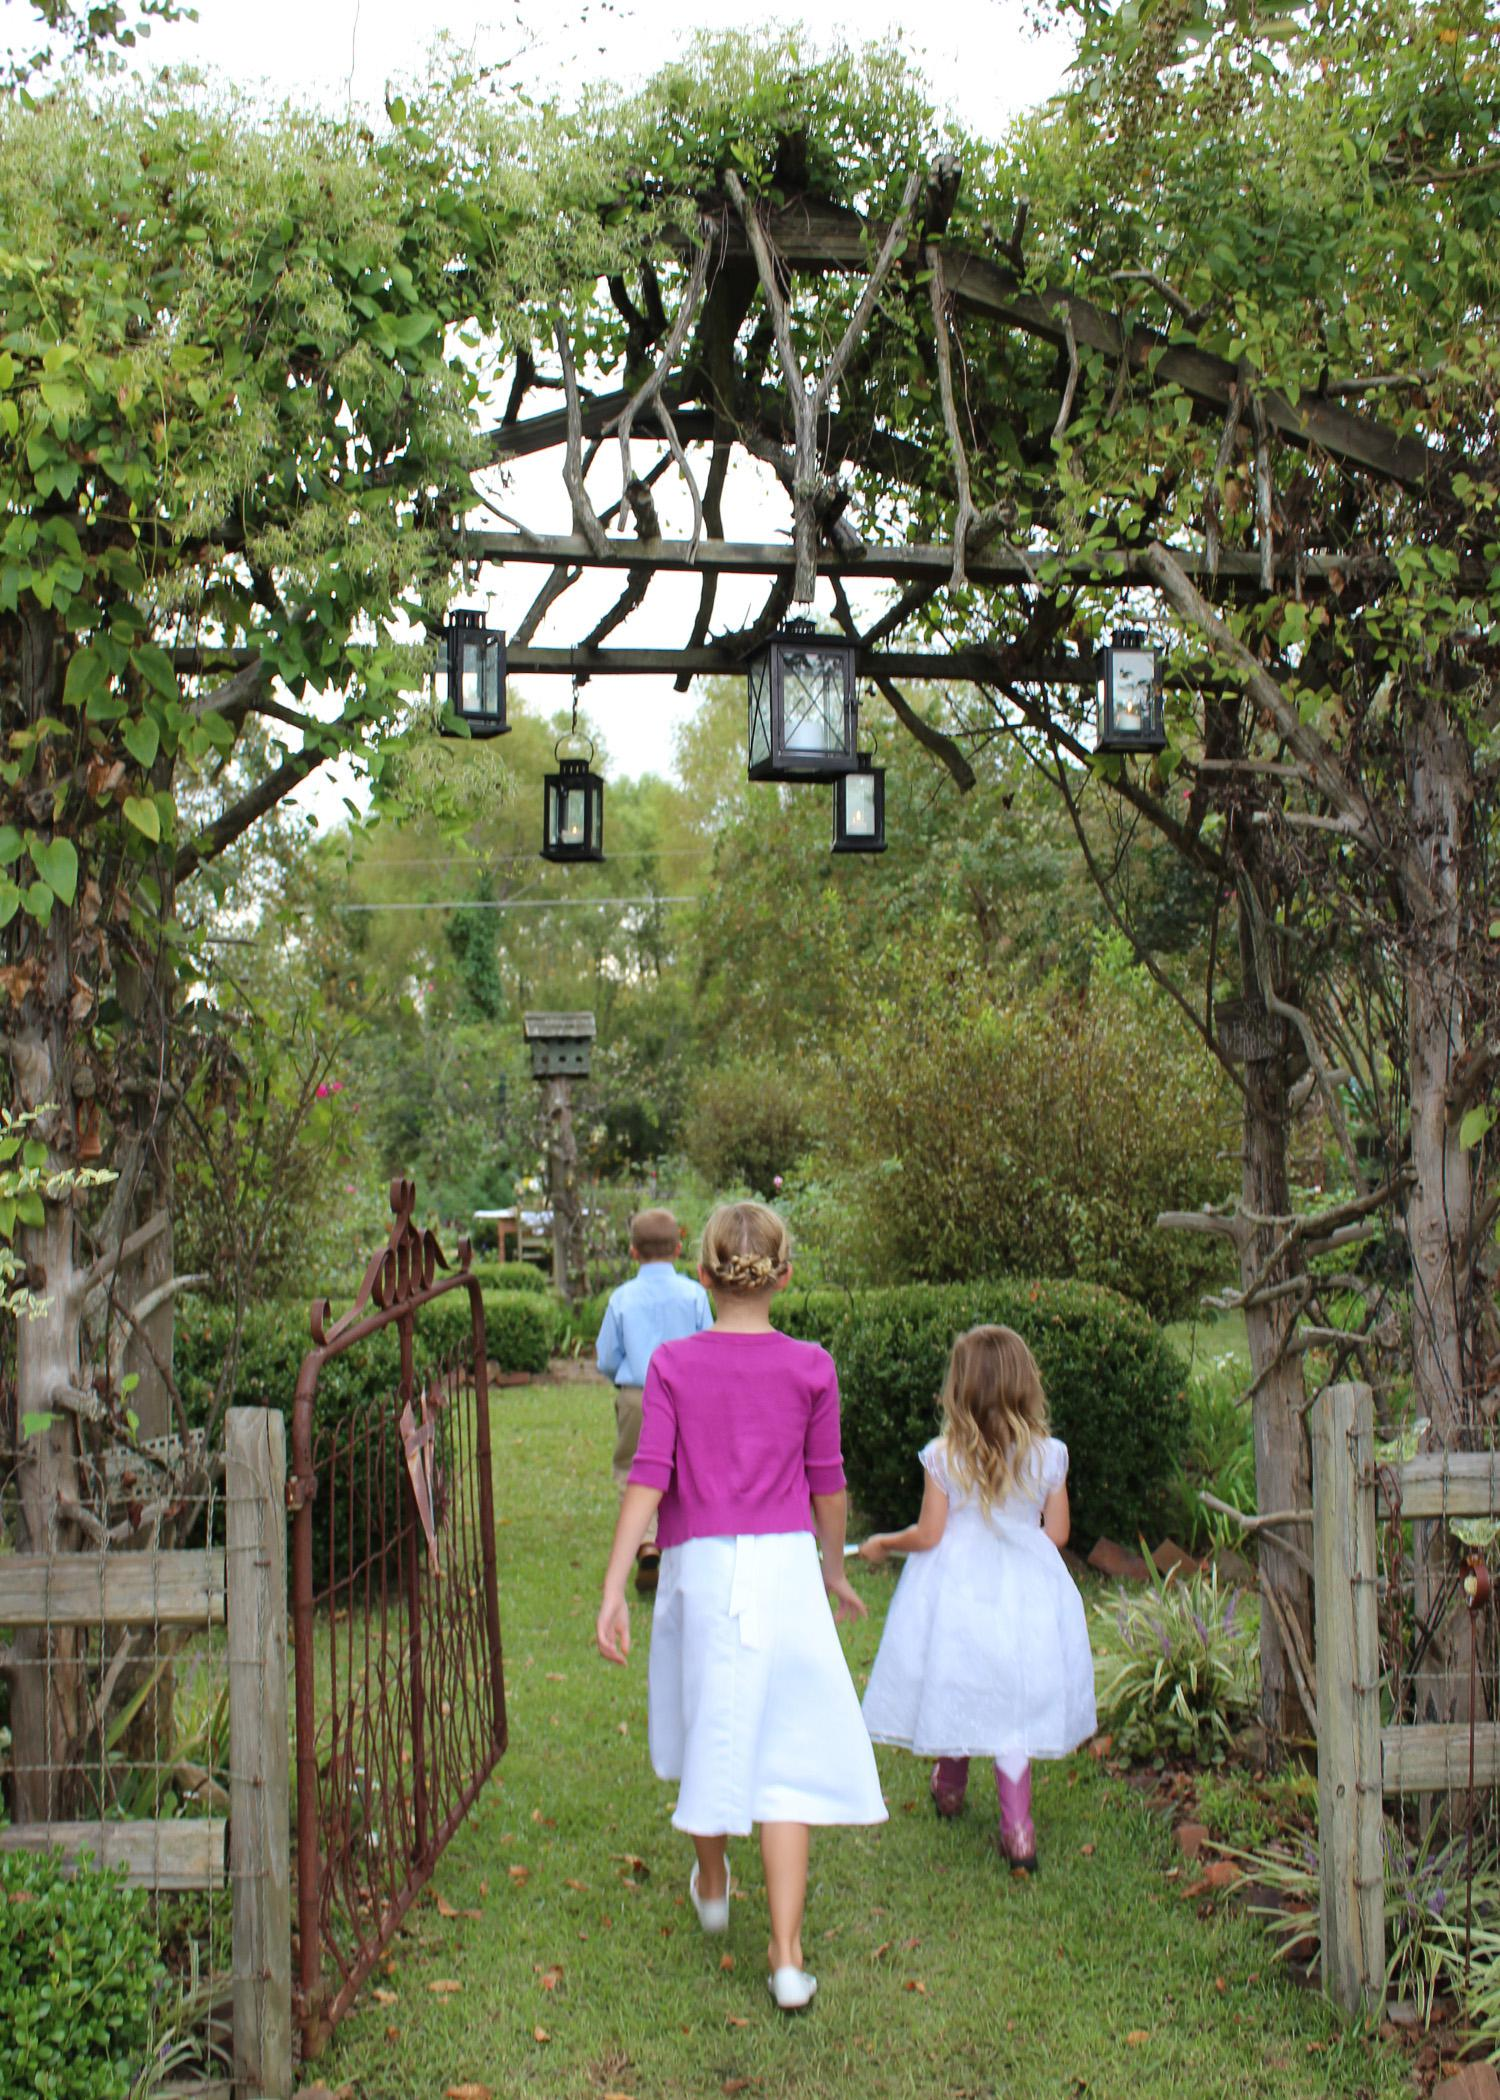 A garden wedding can be the perfect opportunity for homeowners to invest in permanent landscape structures, such as arched entryways. (Photo by MSU Ag Communications/ Keri Collins Lewis)